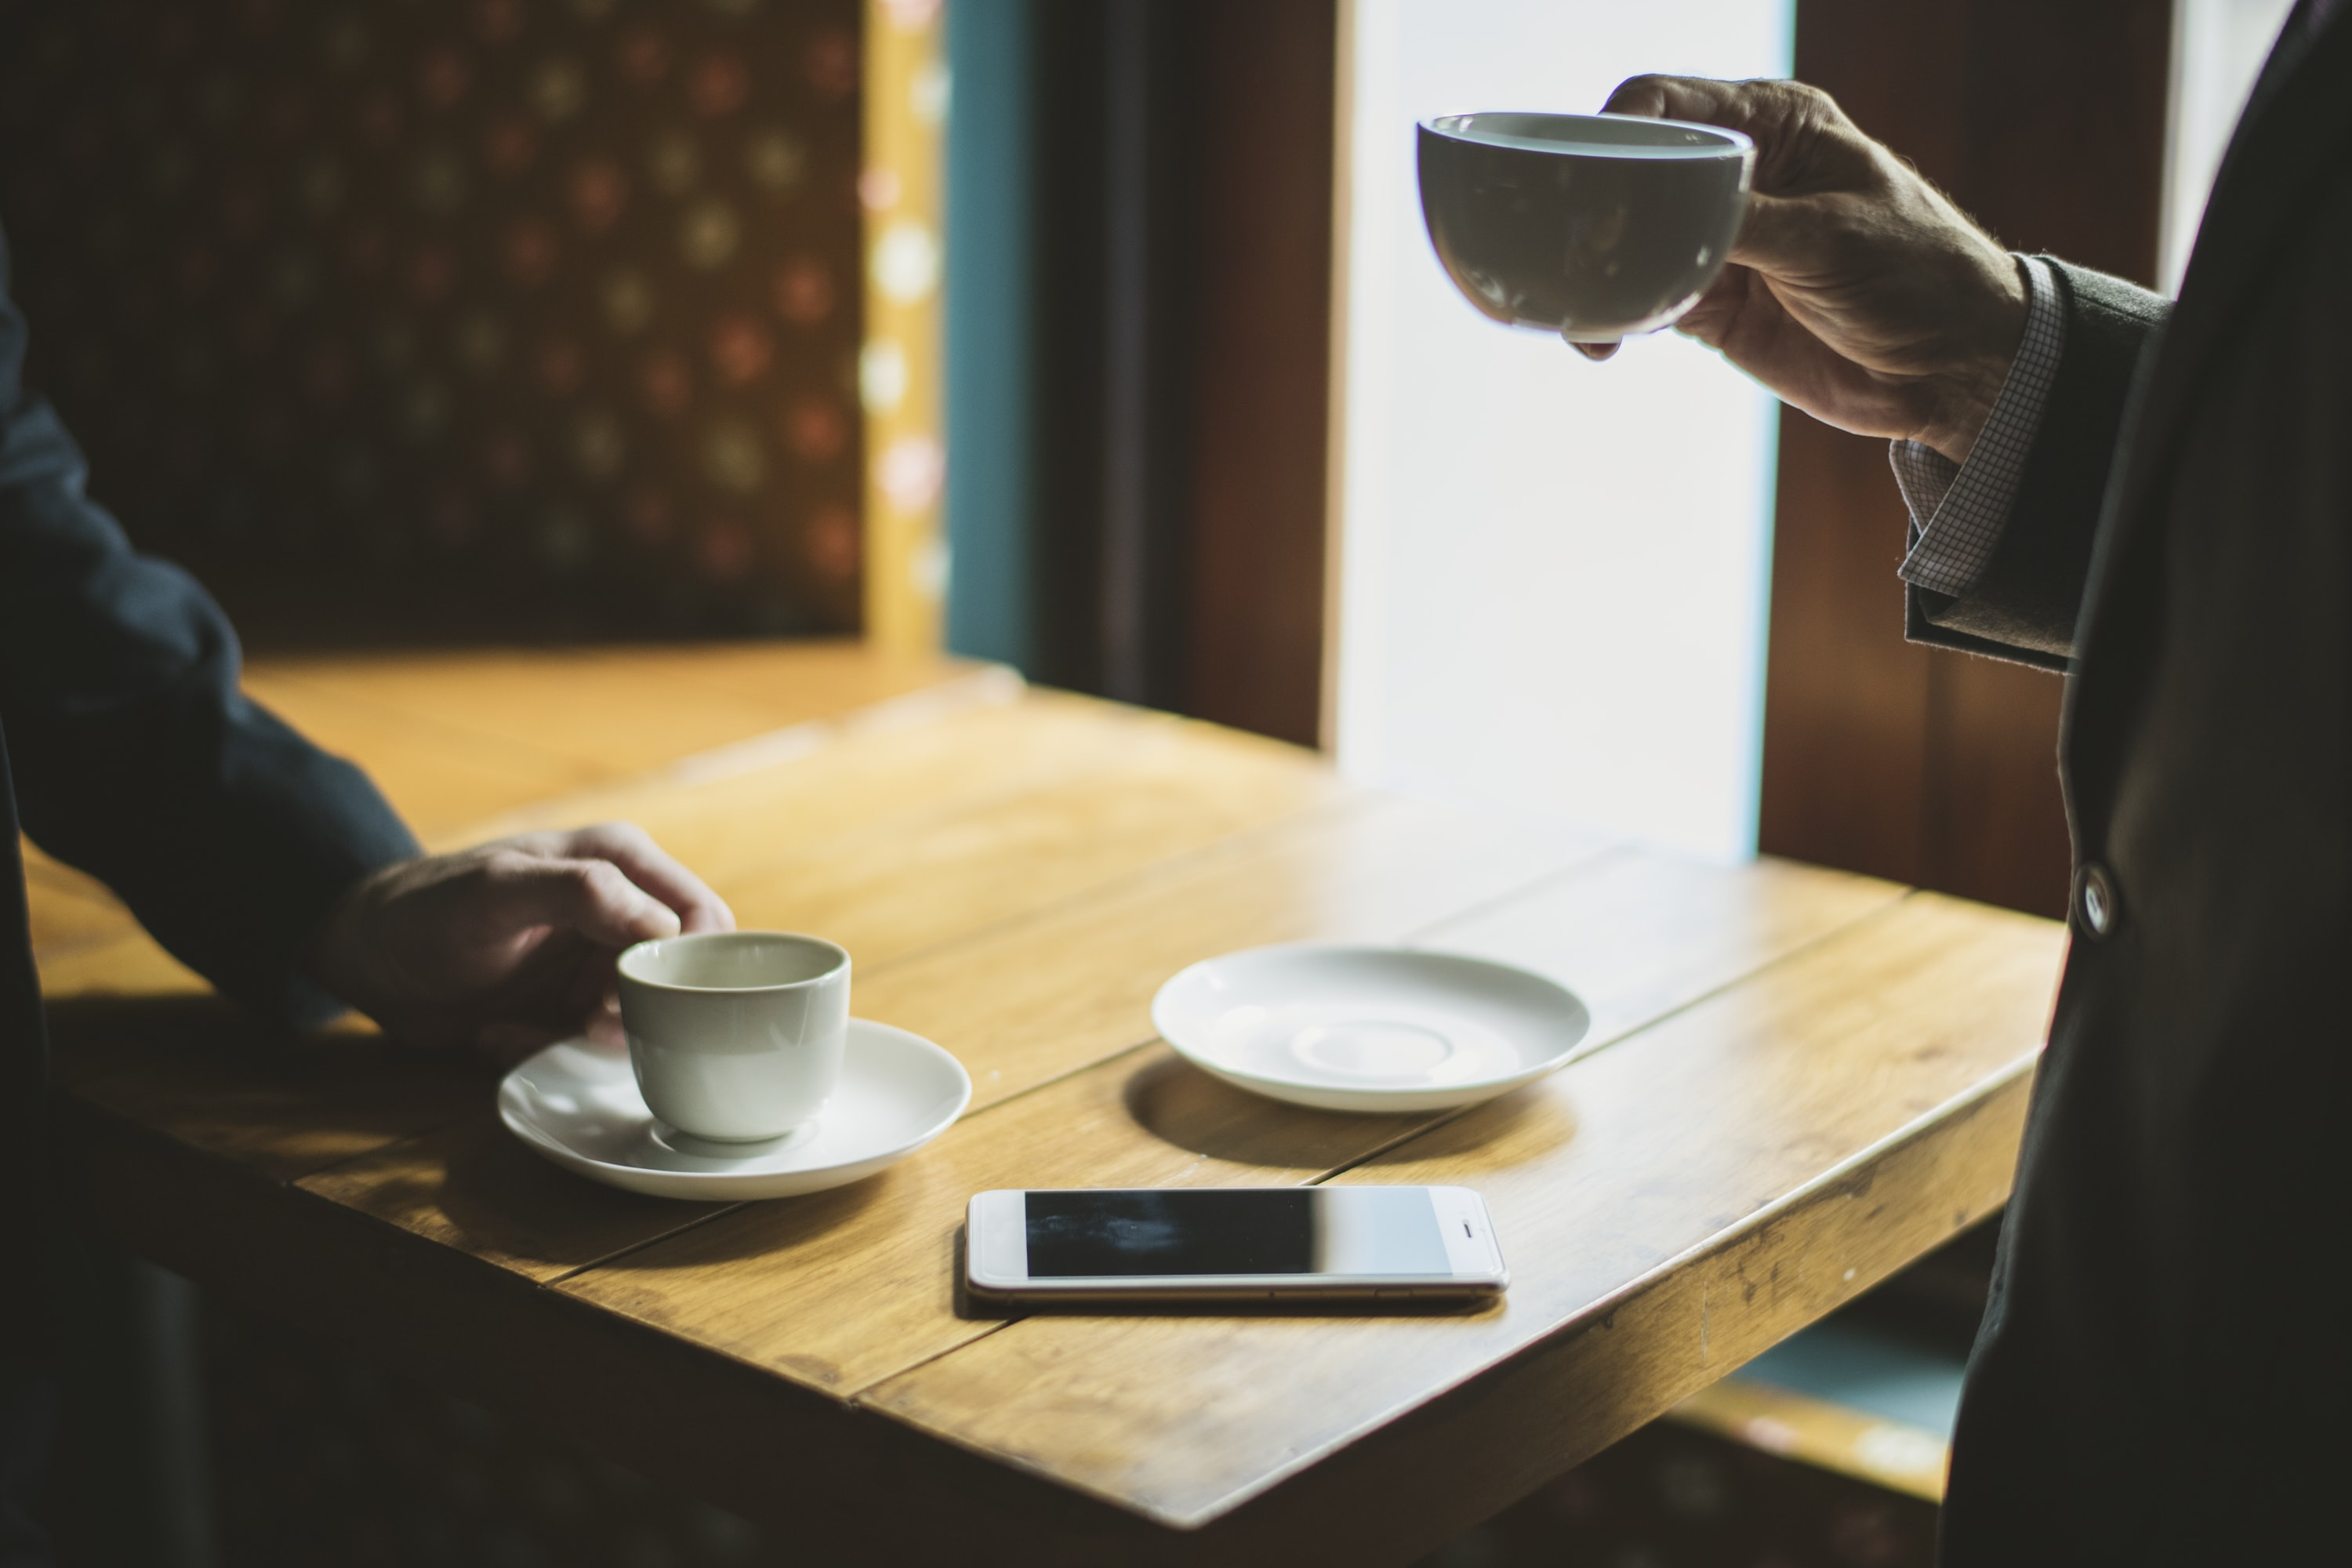 photo of cup on table